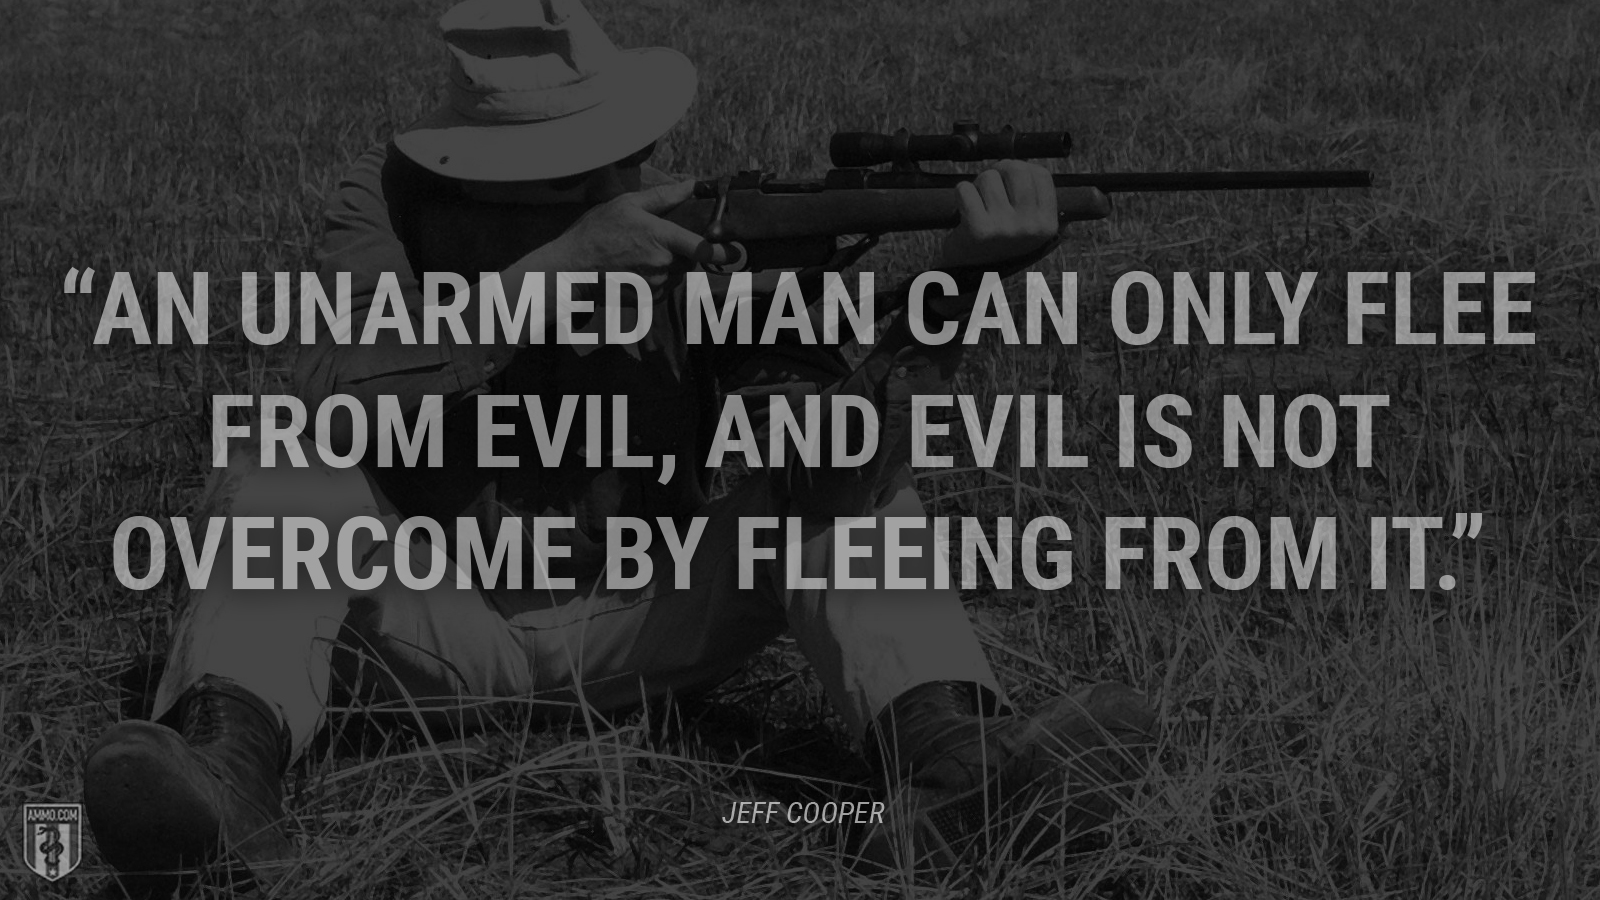 """An unarmed man can only flee from evil, and evil is not overcome by fleeing from it."" - Jeff Cooper"